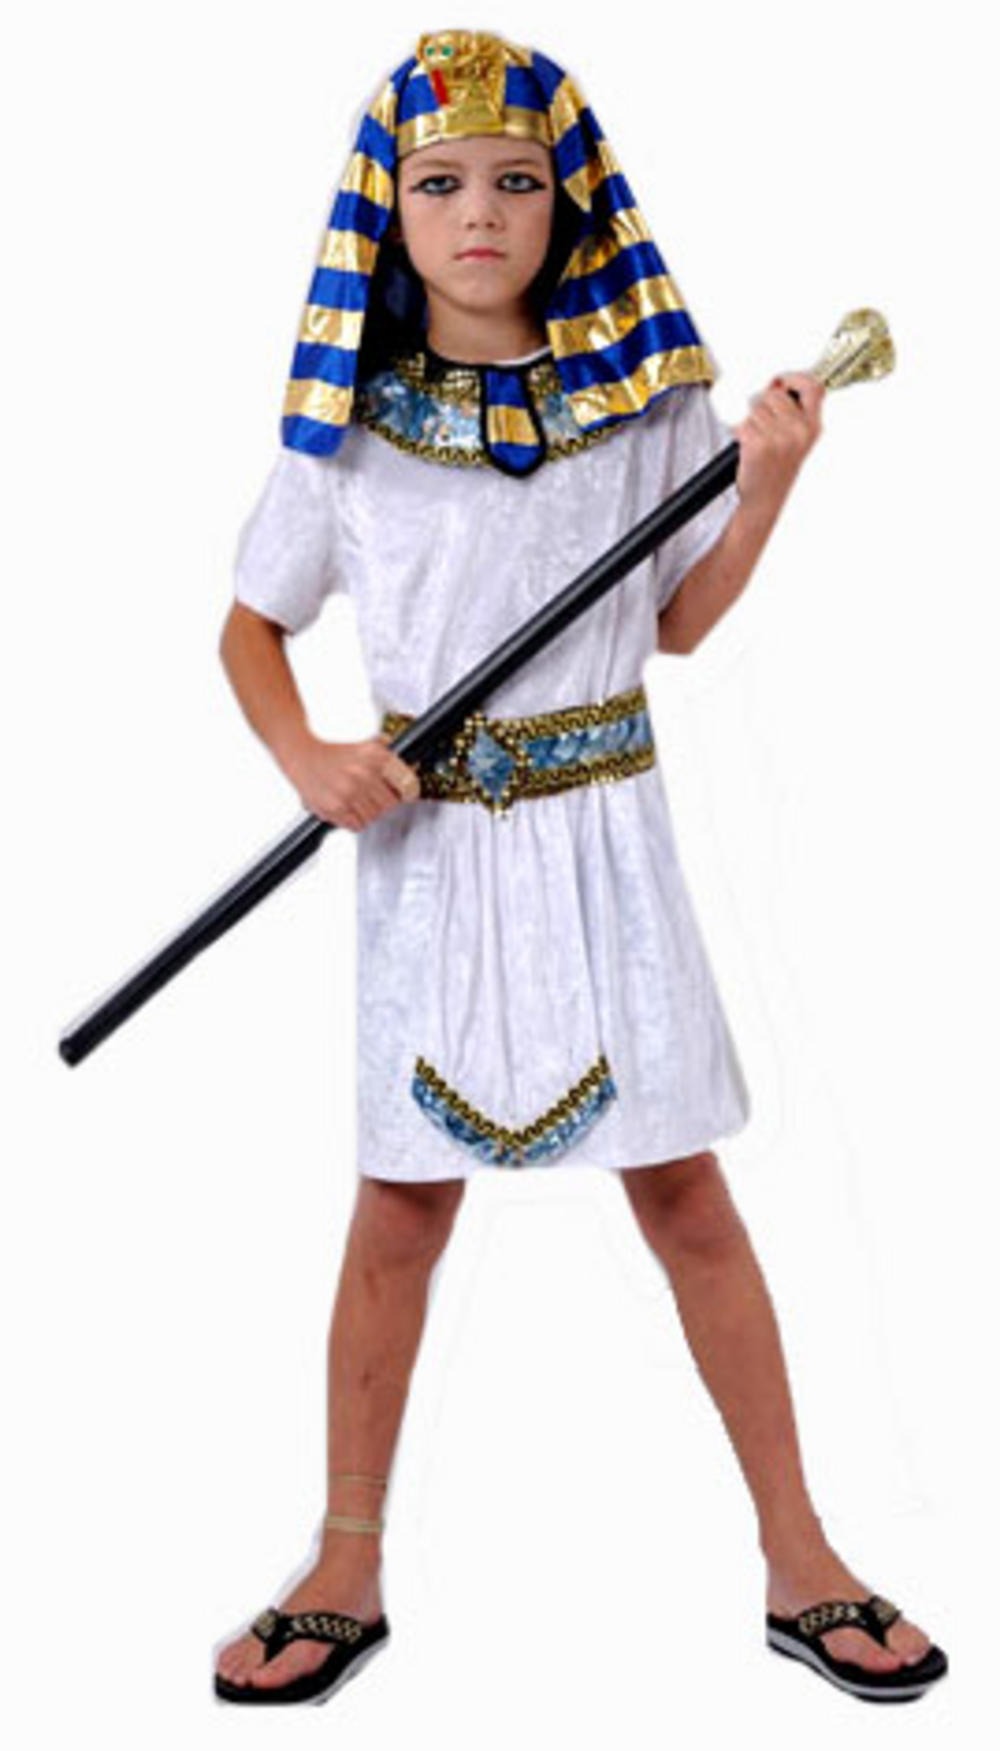 Kidu0027s Egyptian Pharaoh Costume  sc 1 st  Mega Fancy Dress & Kidu0027s Egyptian Pharaoh Costume | Boys Fancy Dress Costumes | Mega ...